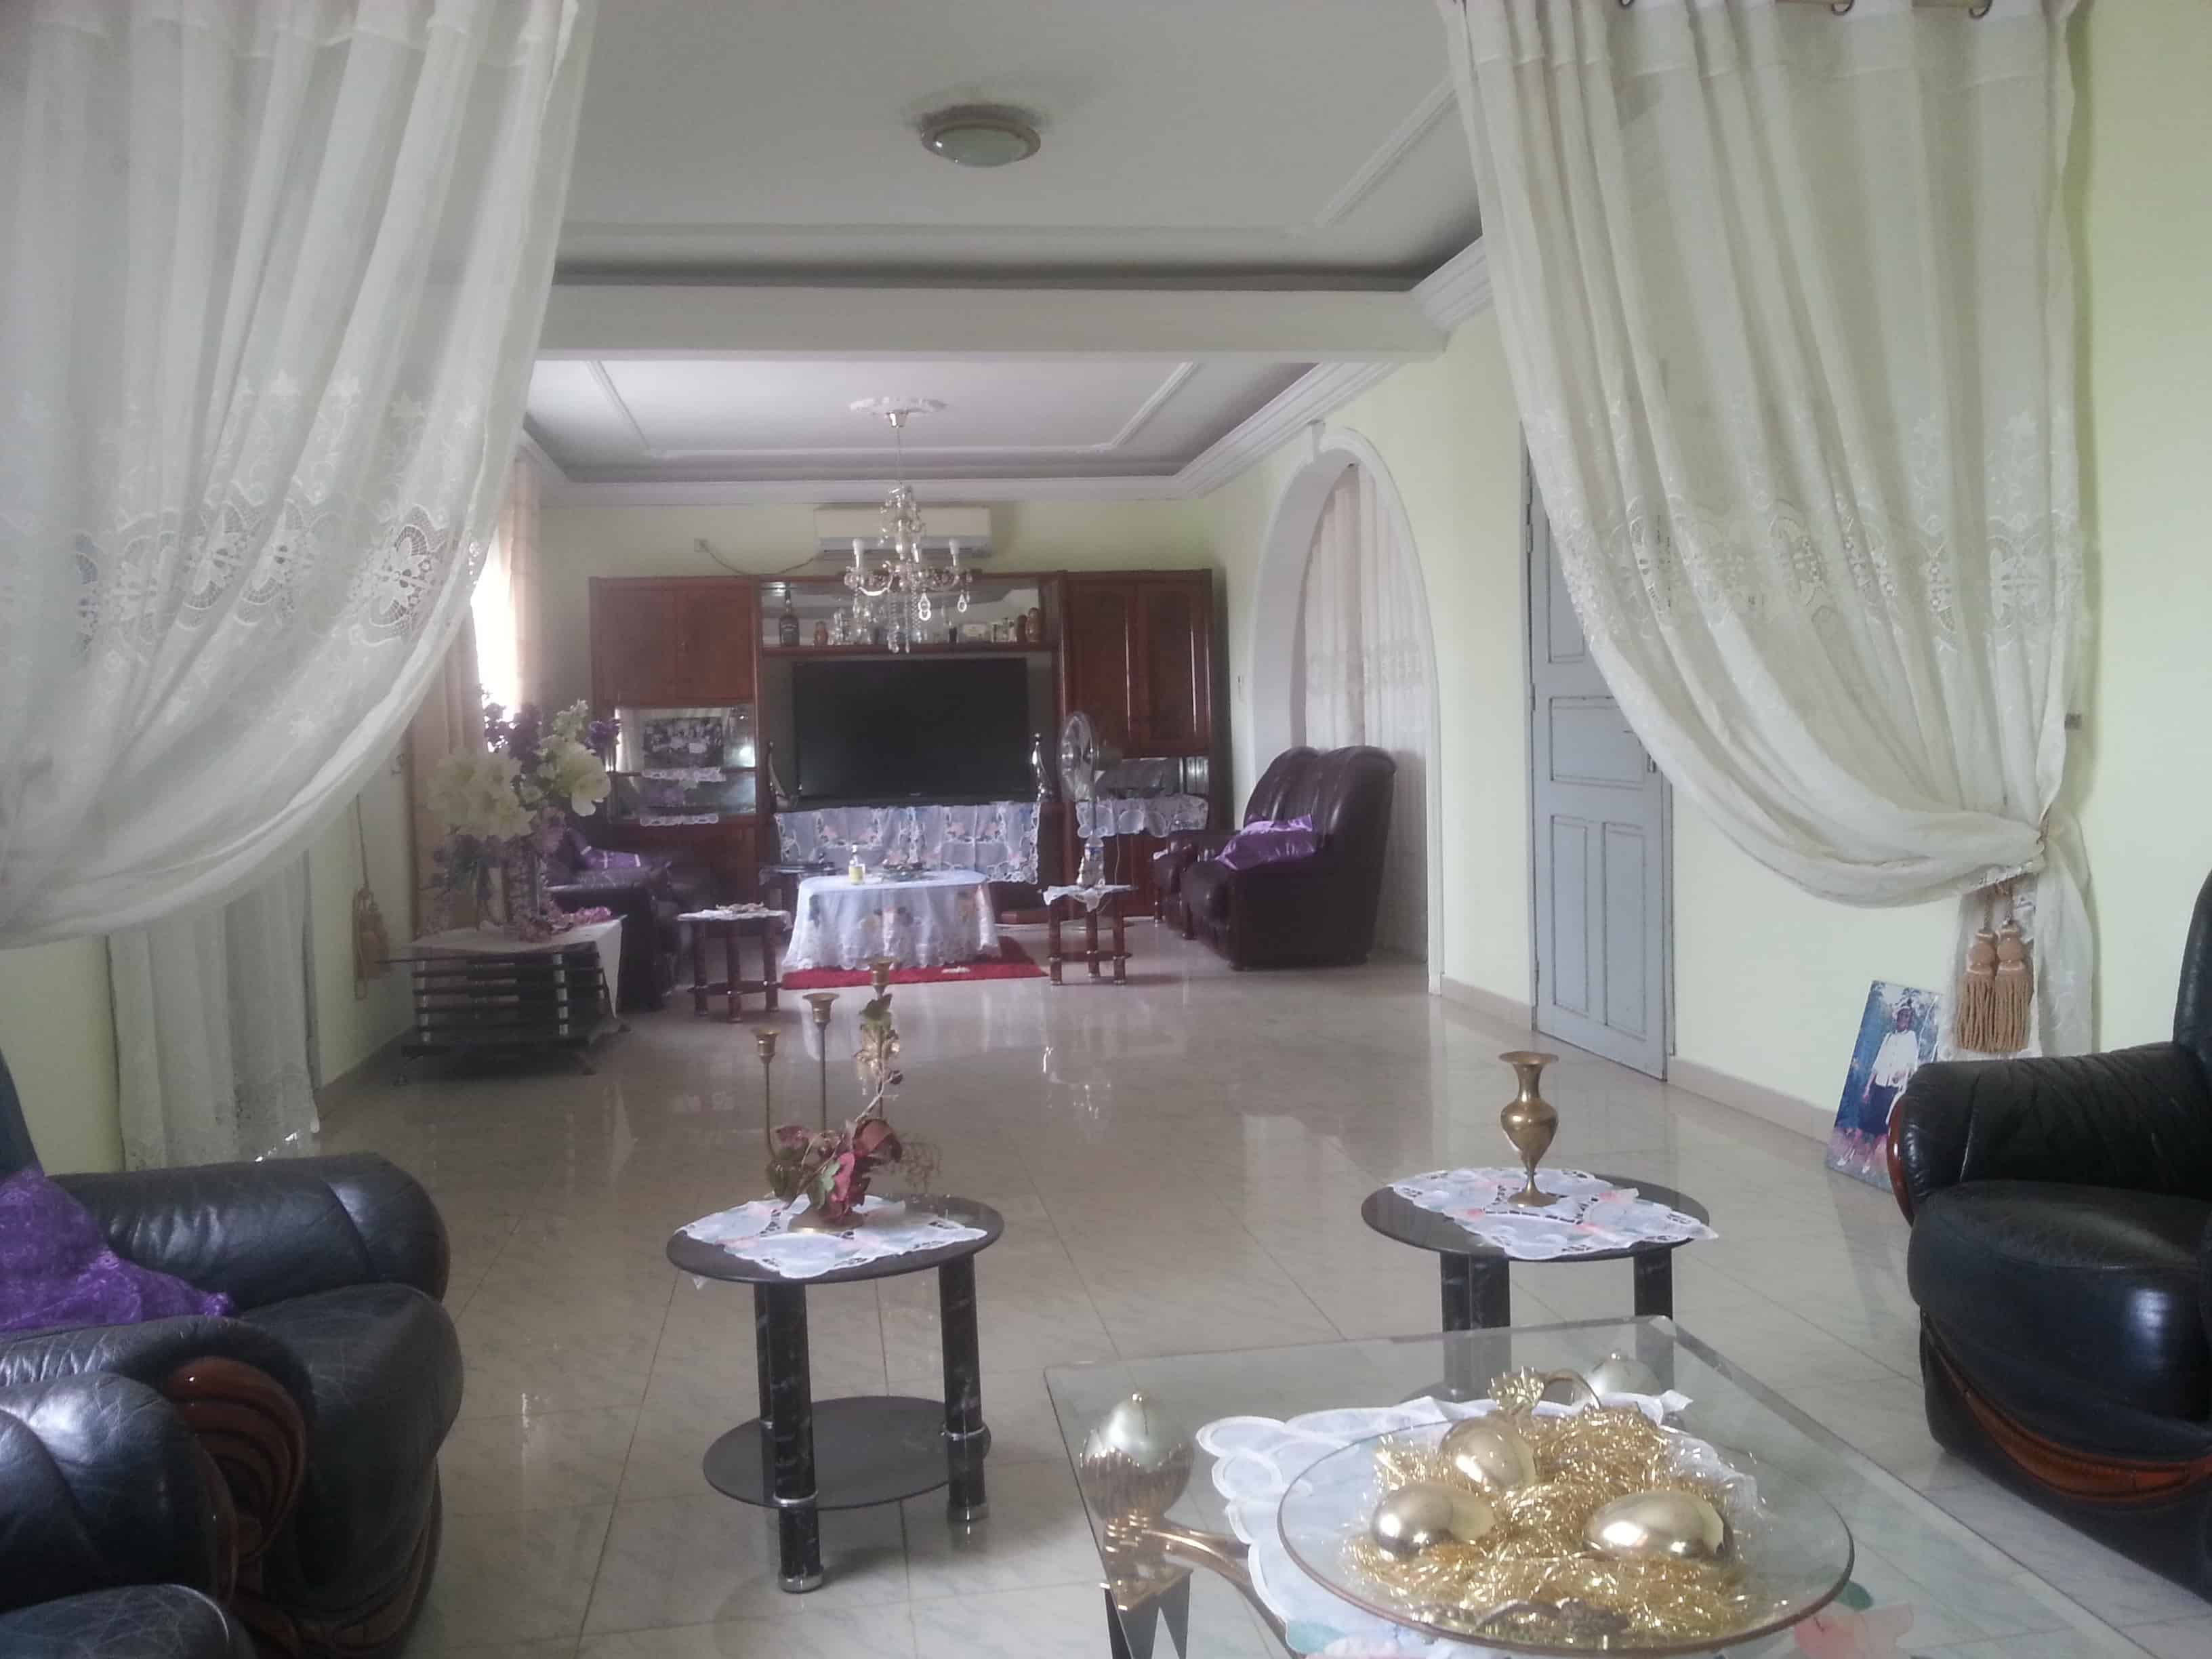 House (Triplex) for sale - Douala, Ndogbong, ndogbong - 2 living room(s), 6 bedroom(s), 5 bathroom(s) - 145 000 000 FCFA / month